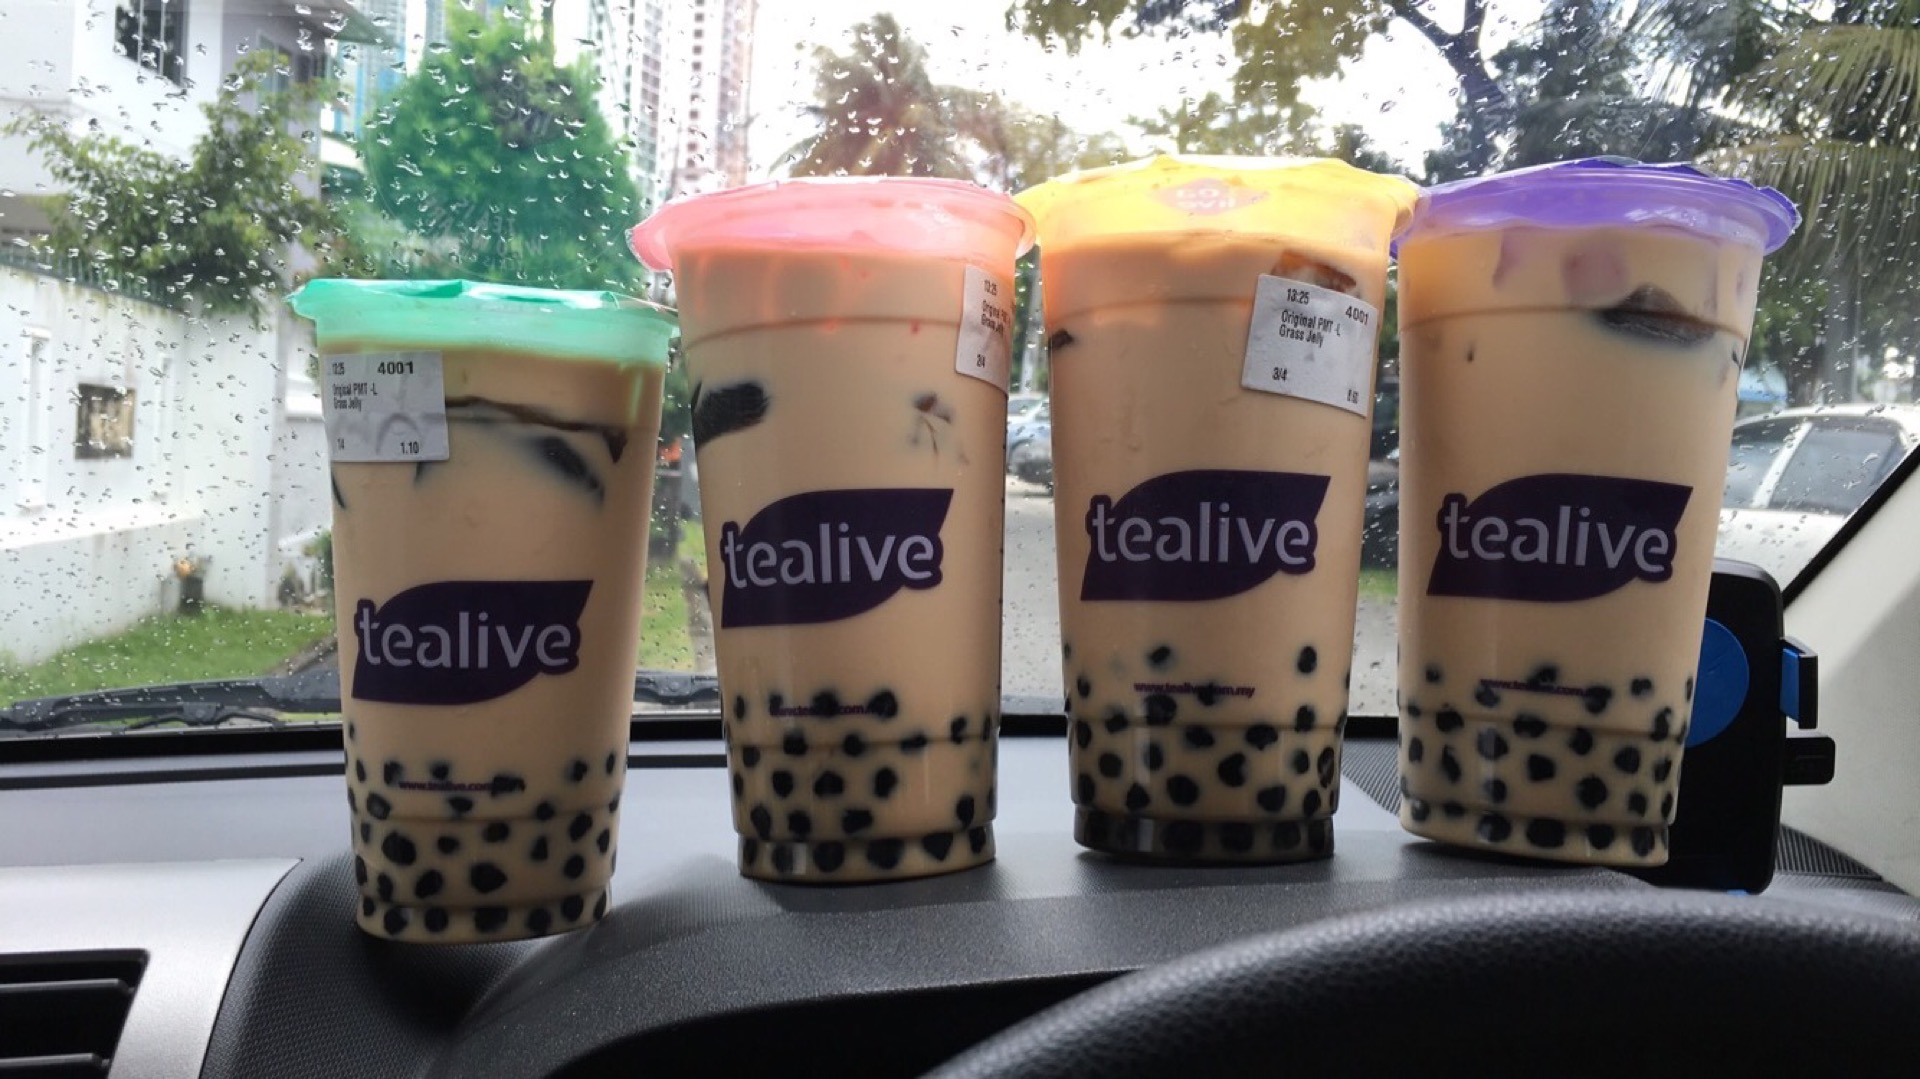 chatime-will-now-be-called-tealive-ceo-plans-on-opening-more-outlets-for-malaysians-world-of-buzz-8